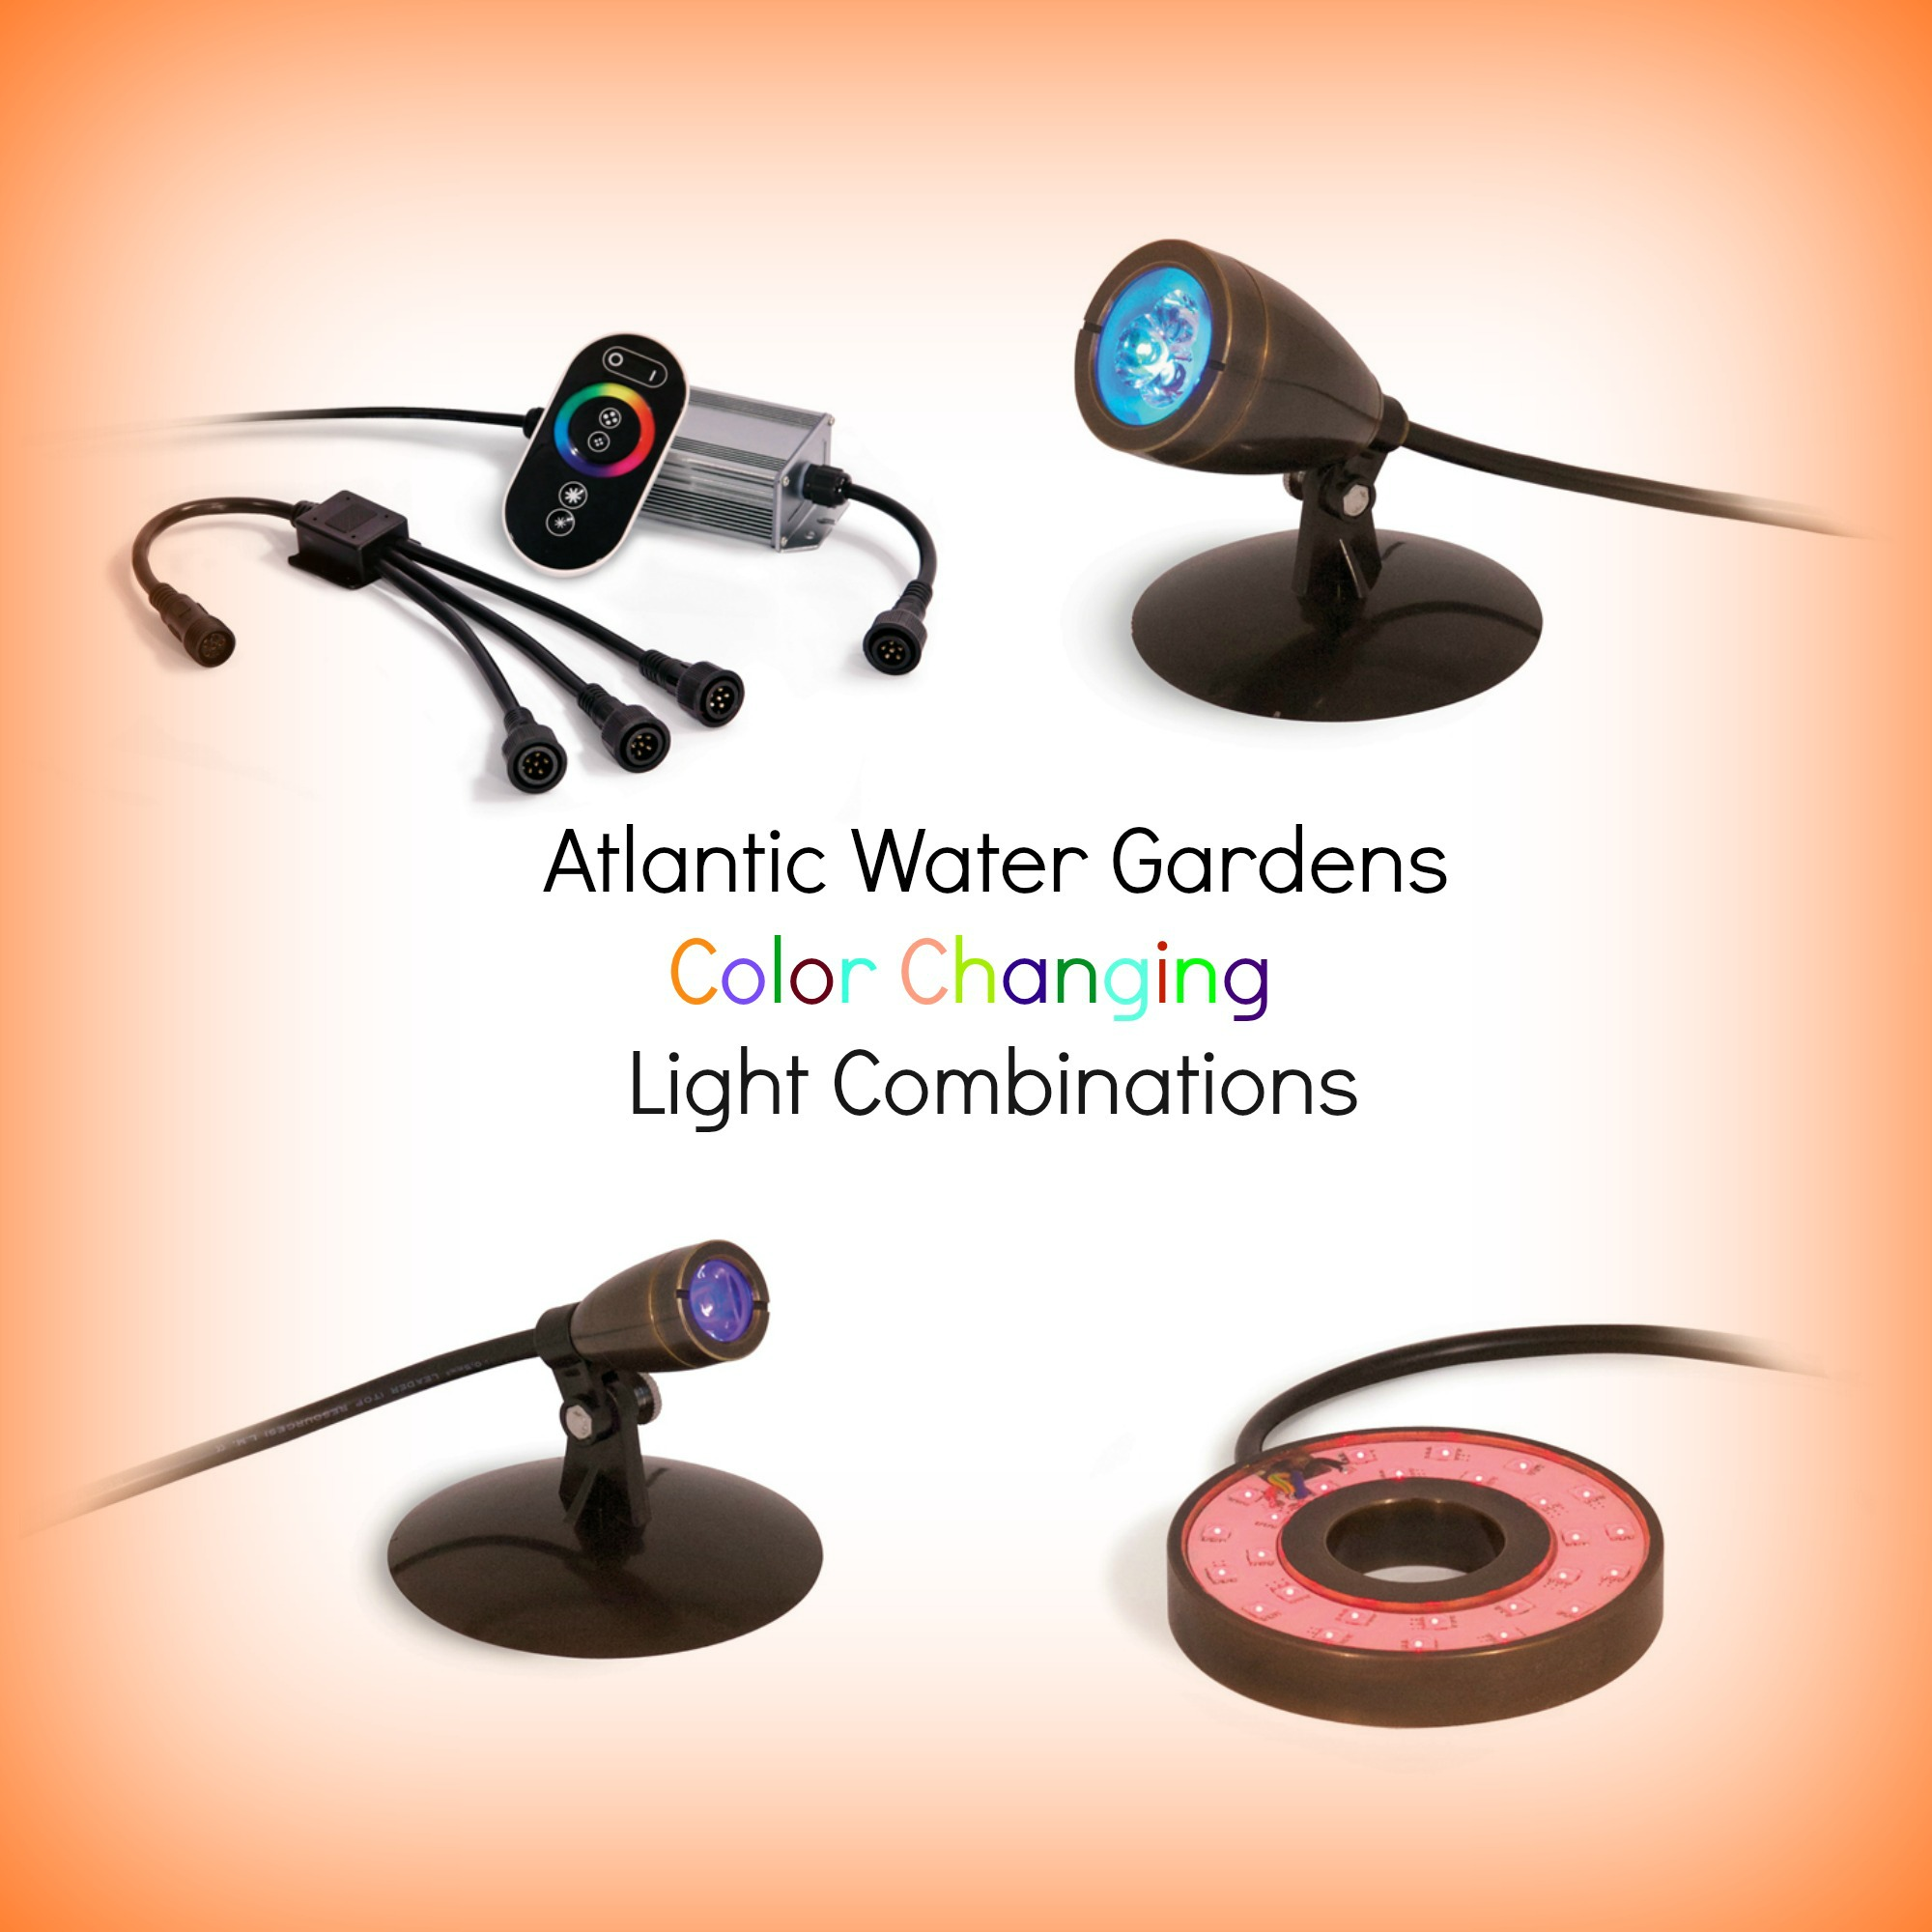 Atlantic Water gardens Color Changing LED Lighting